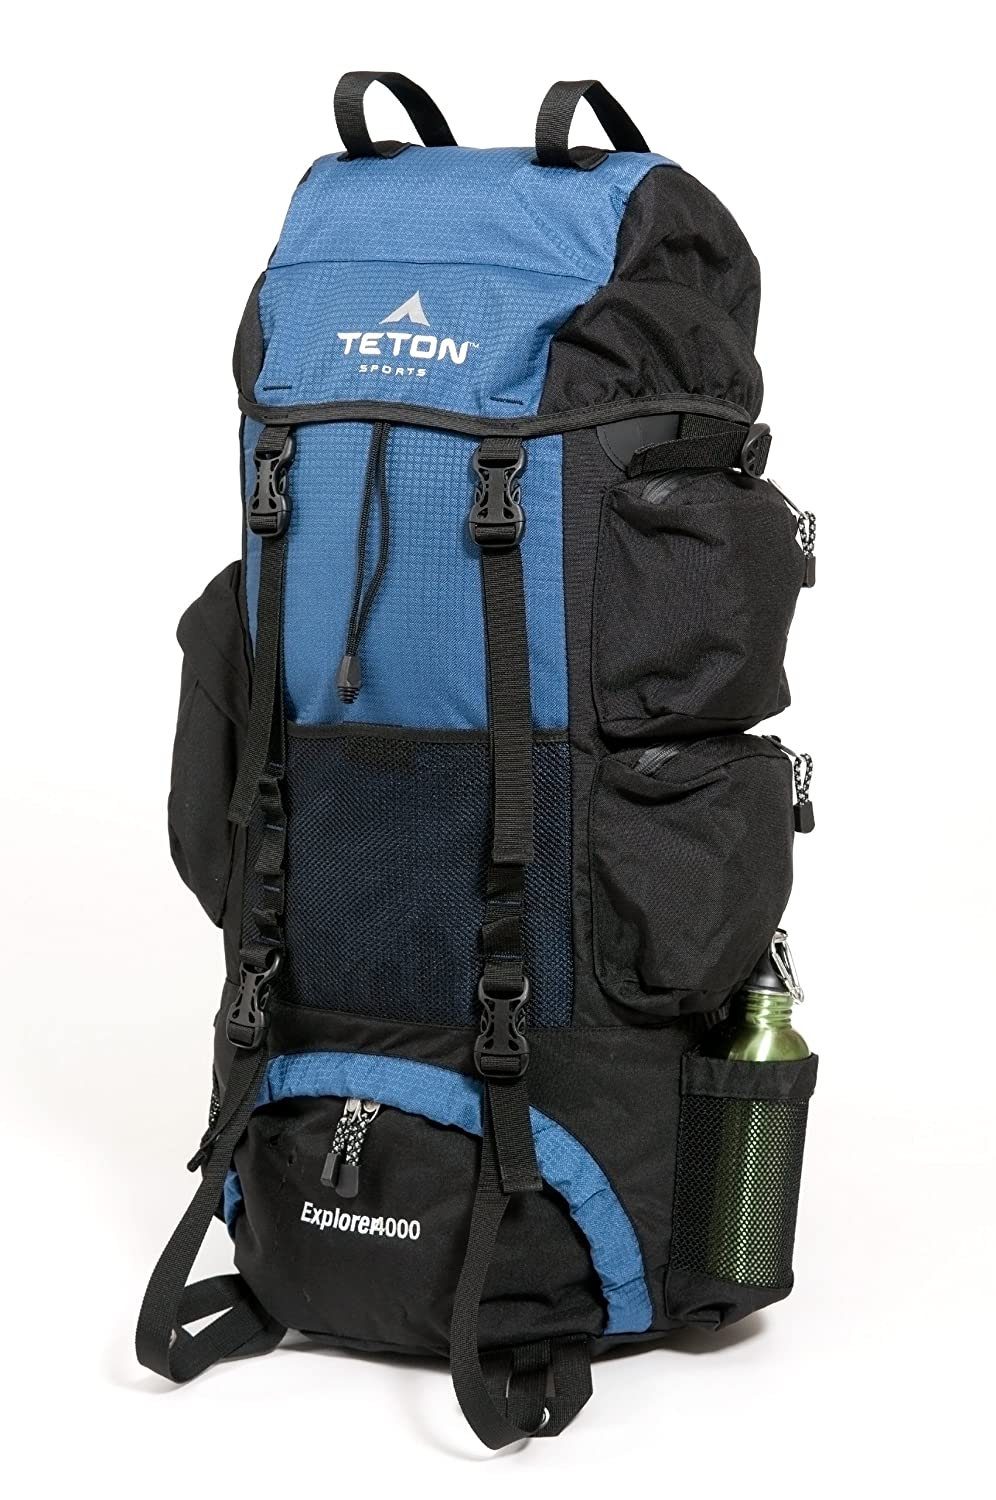 TETON Sports Explorer 4000 Internal Frame Backpack (Navy Blue) $66.06